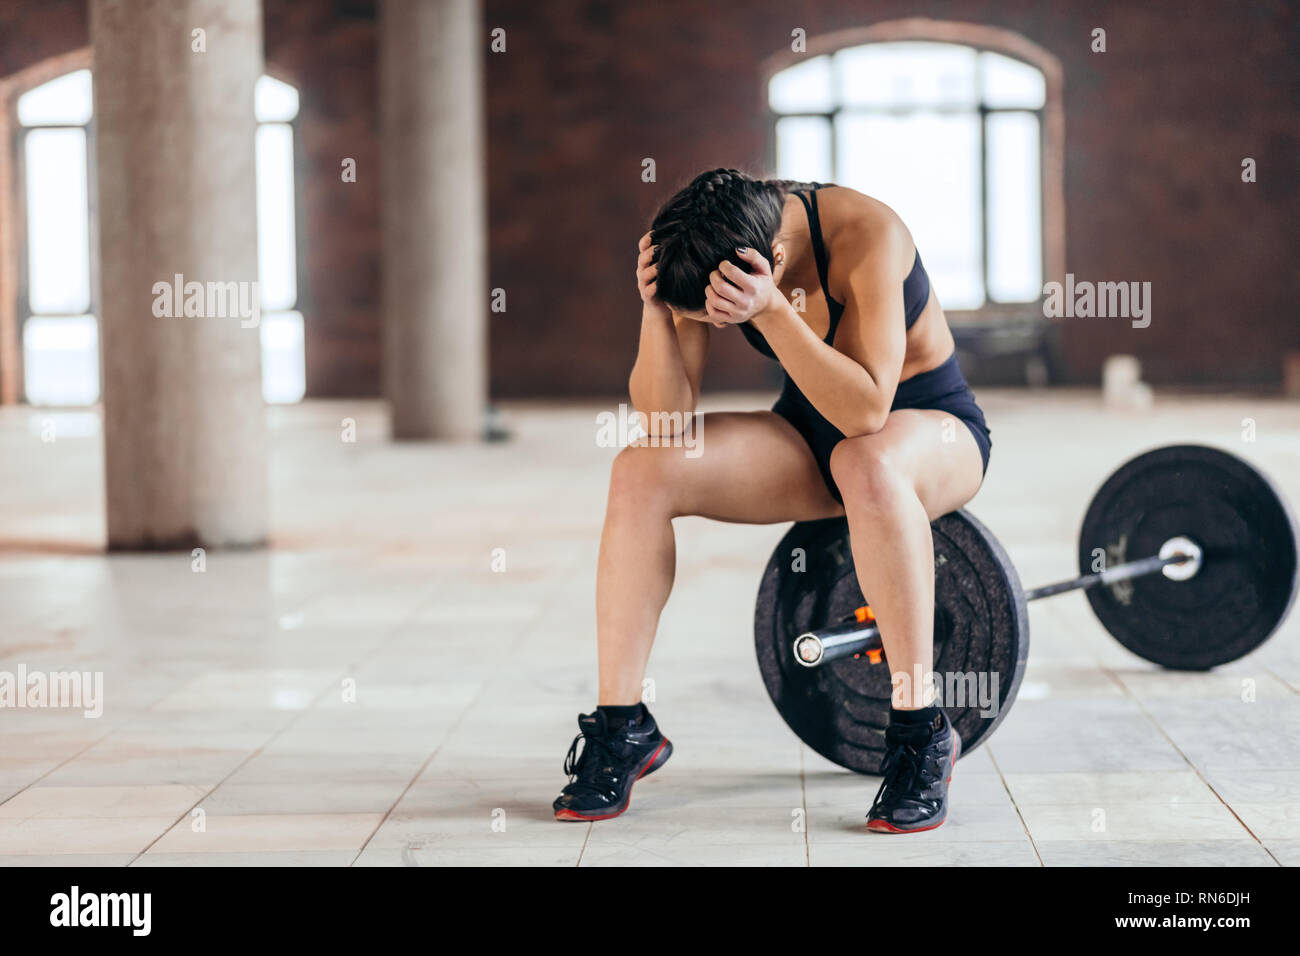 tired athlete holding her head during the break. full length photo. copy space. problem, dissatisfaction - Stock Image